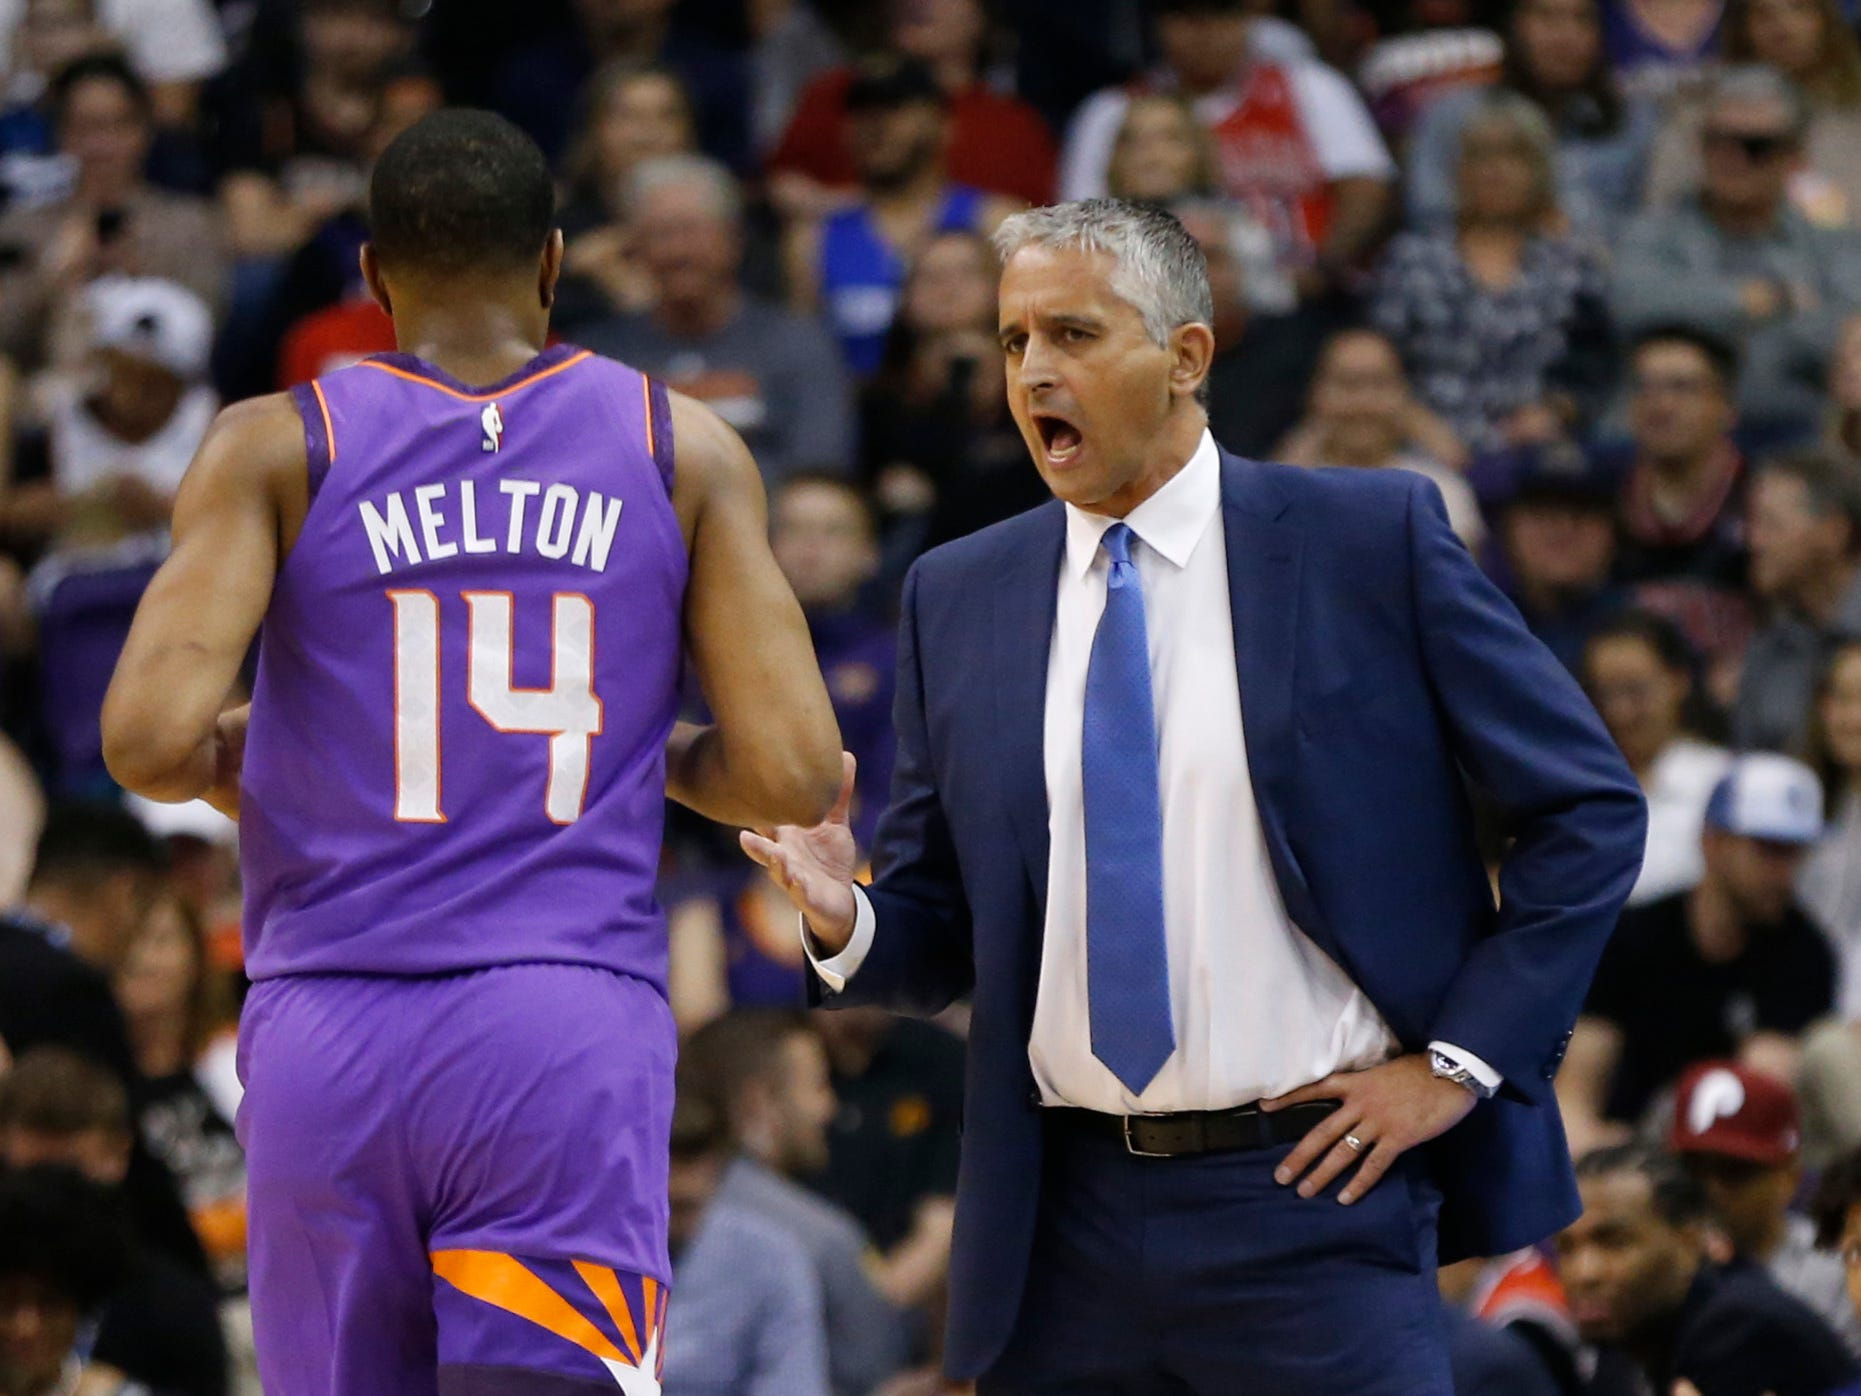 Suns' head coach Igor Kokoskov talks with point guard De'Anthony Melton (14) during the first half at Talking Stick Resort Arena in Phoenix, Ariz. on March 18, 2019.